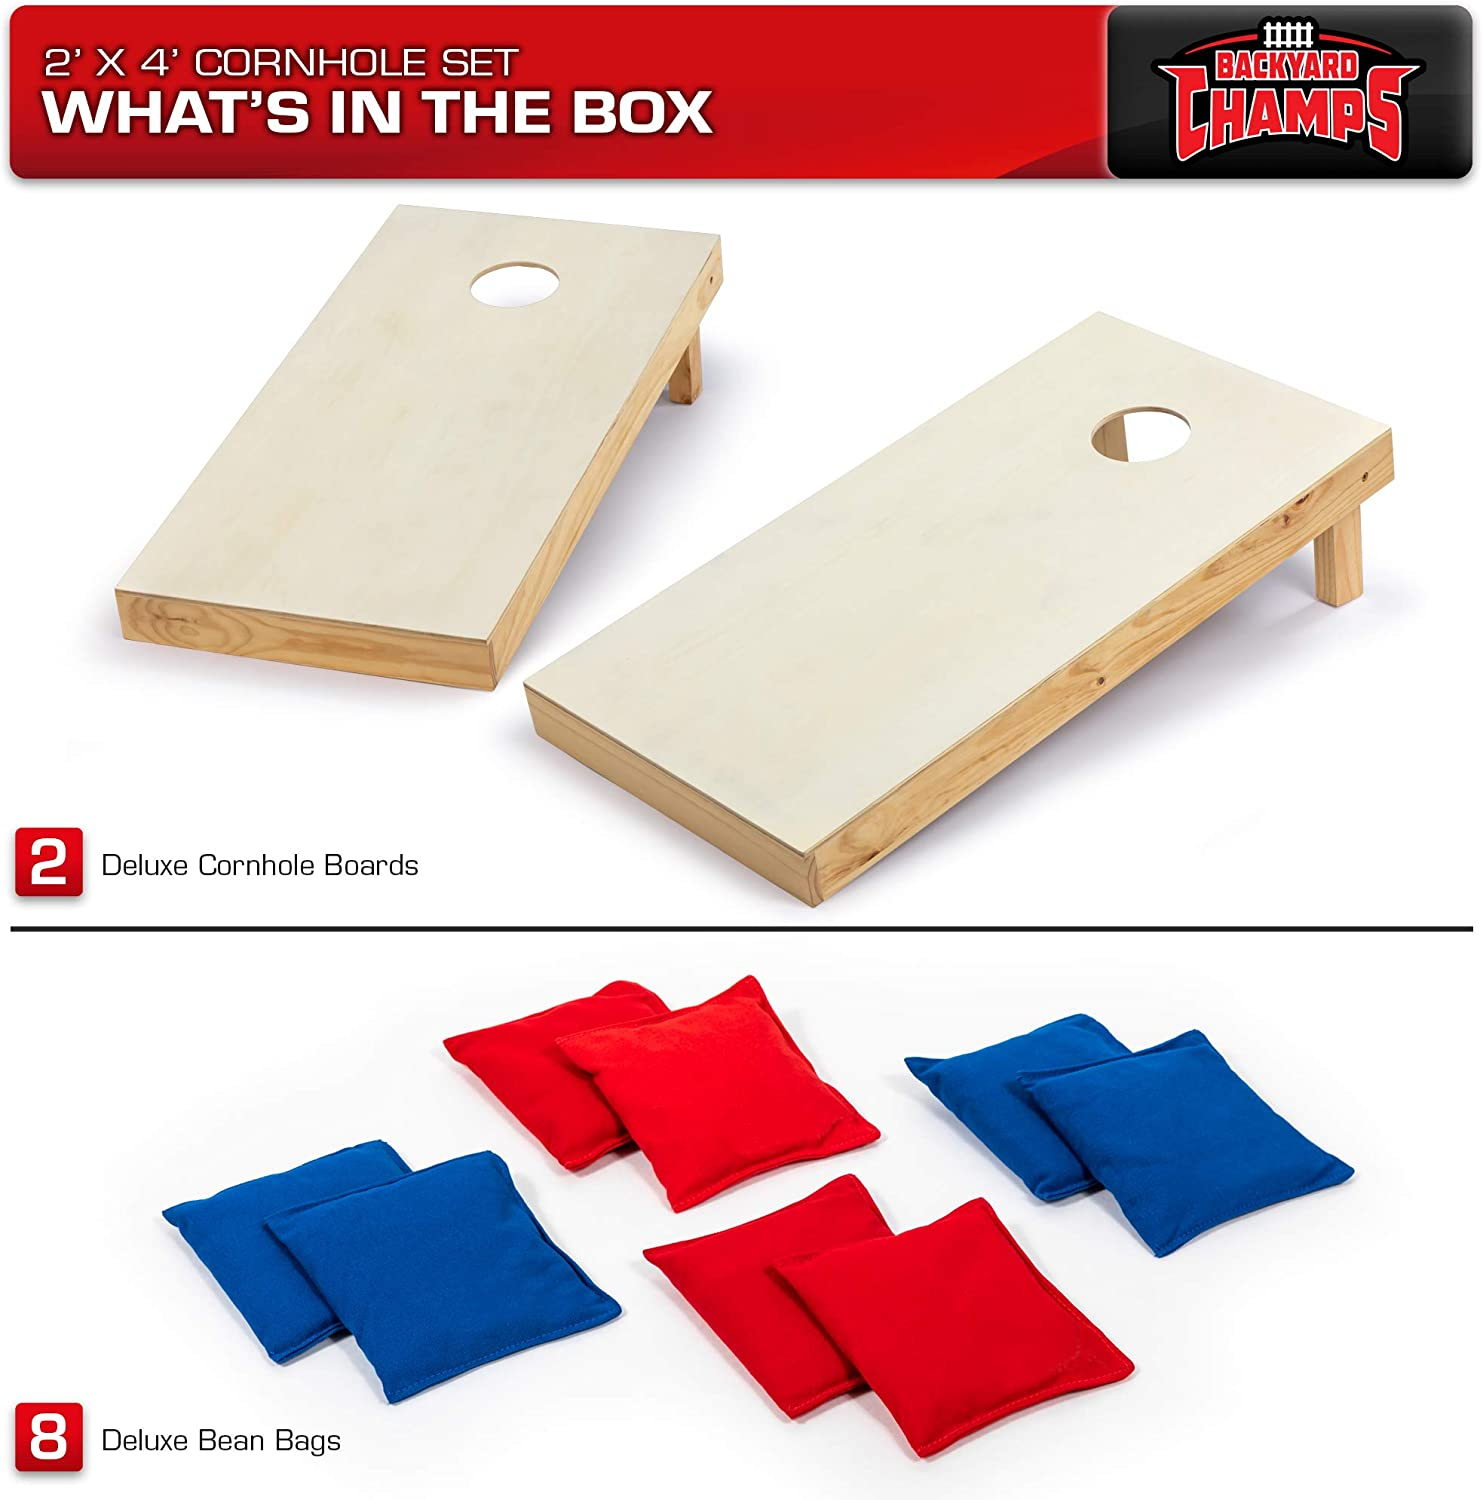 Backyard Champs Corn Hole Outdoor Game USA Stars and Stripes 2 x 3 Foot 2 Regulation MDF Cornhole Boards and 8 Bean Bags